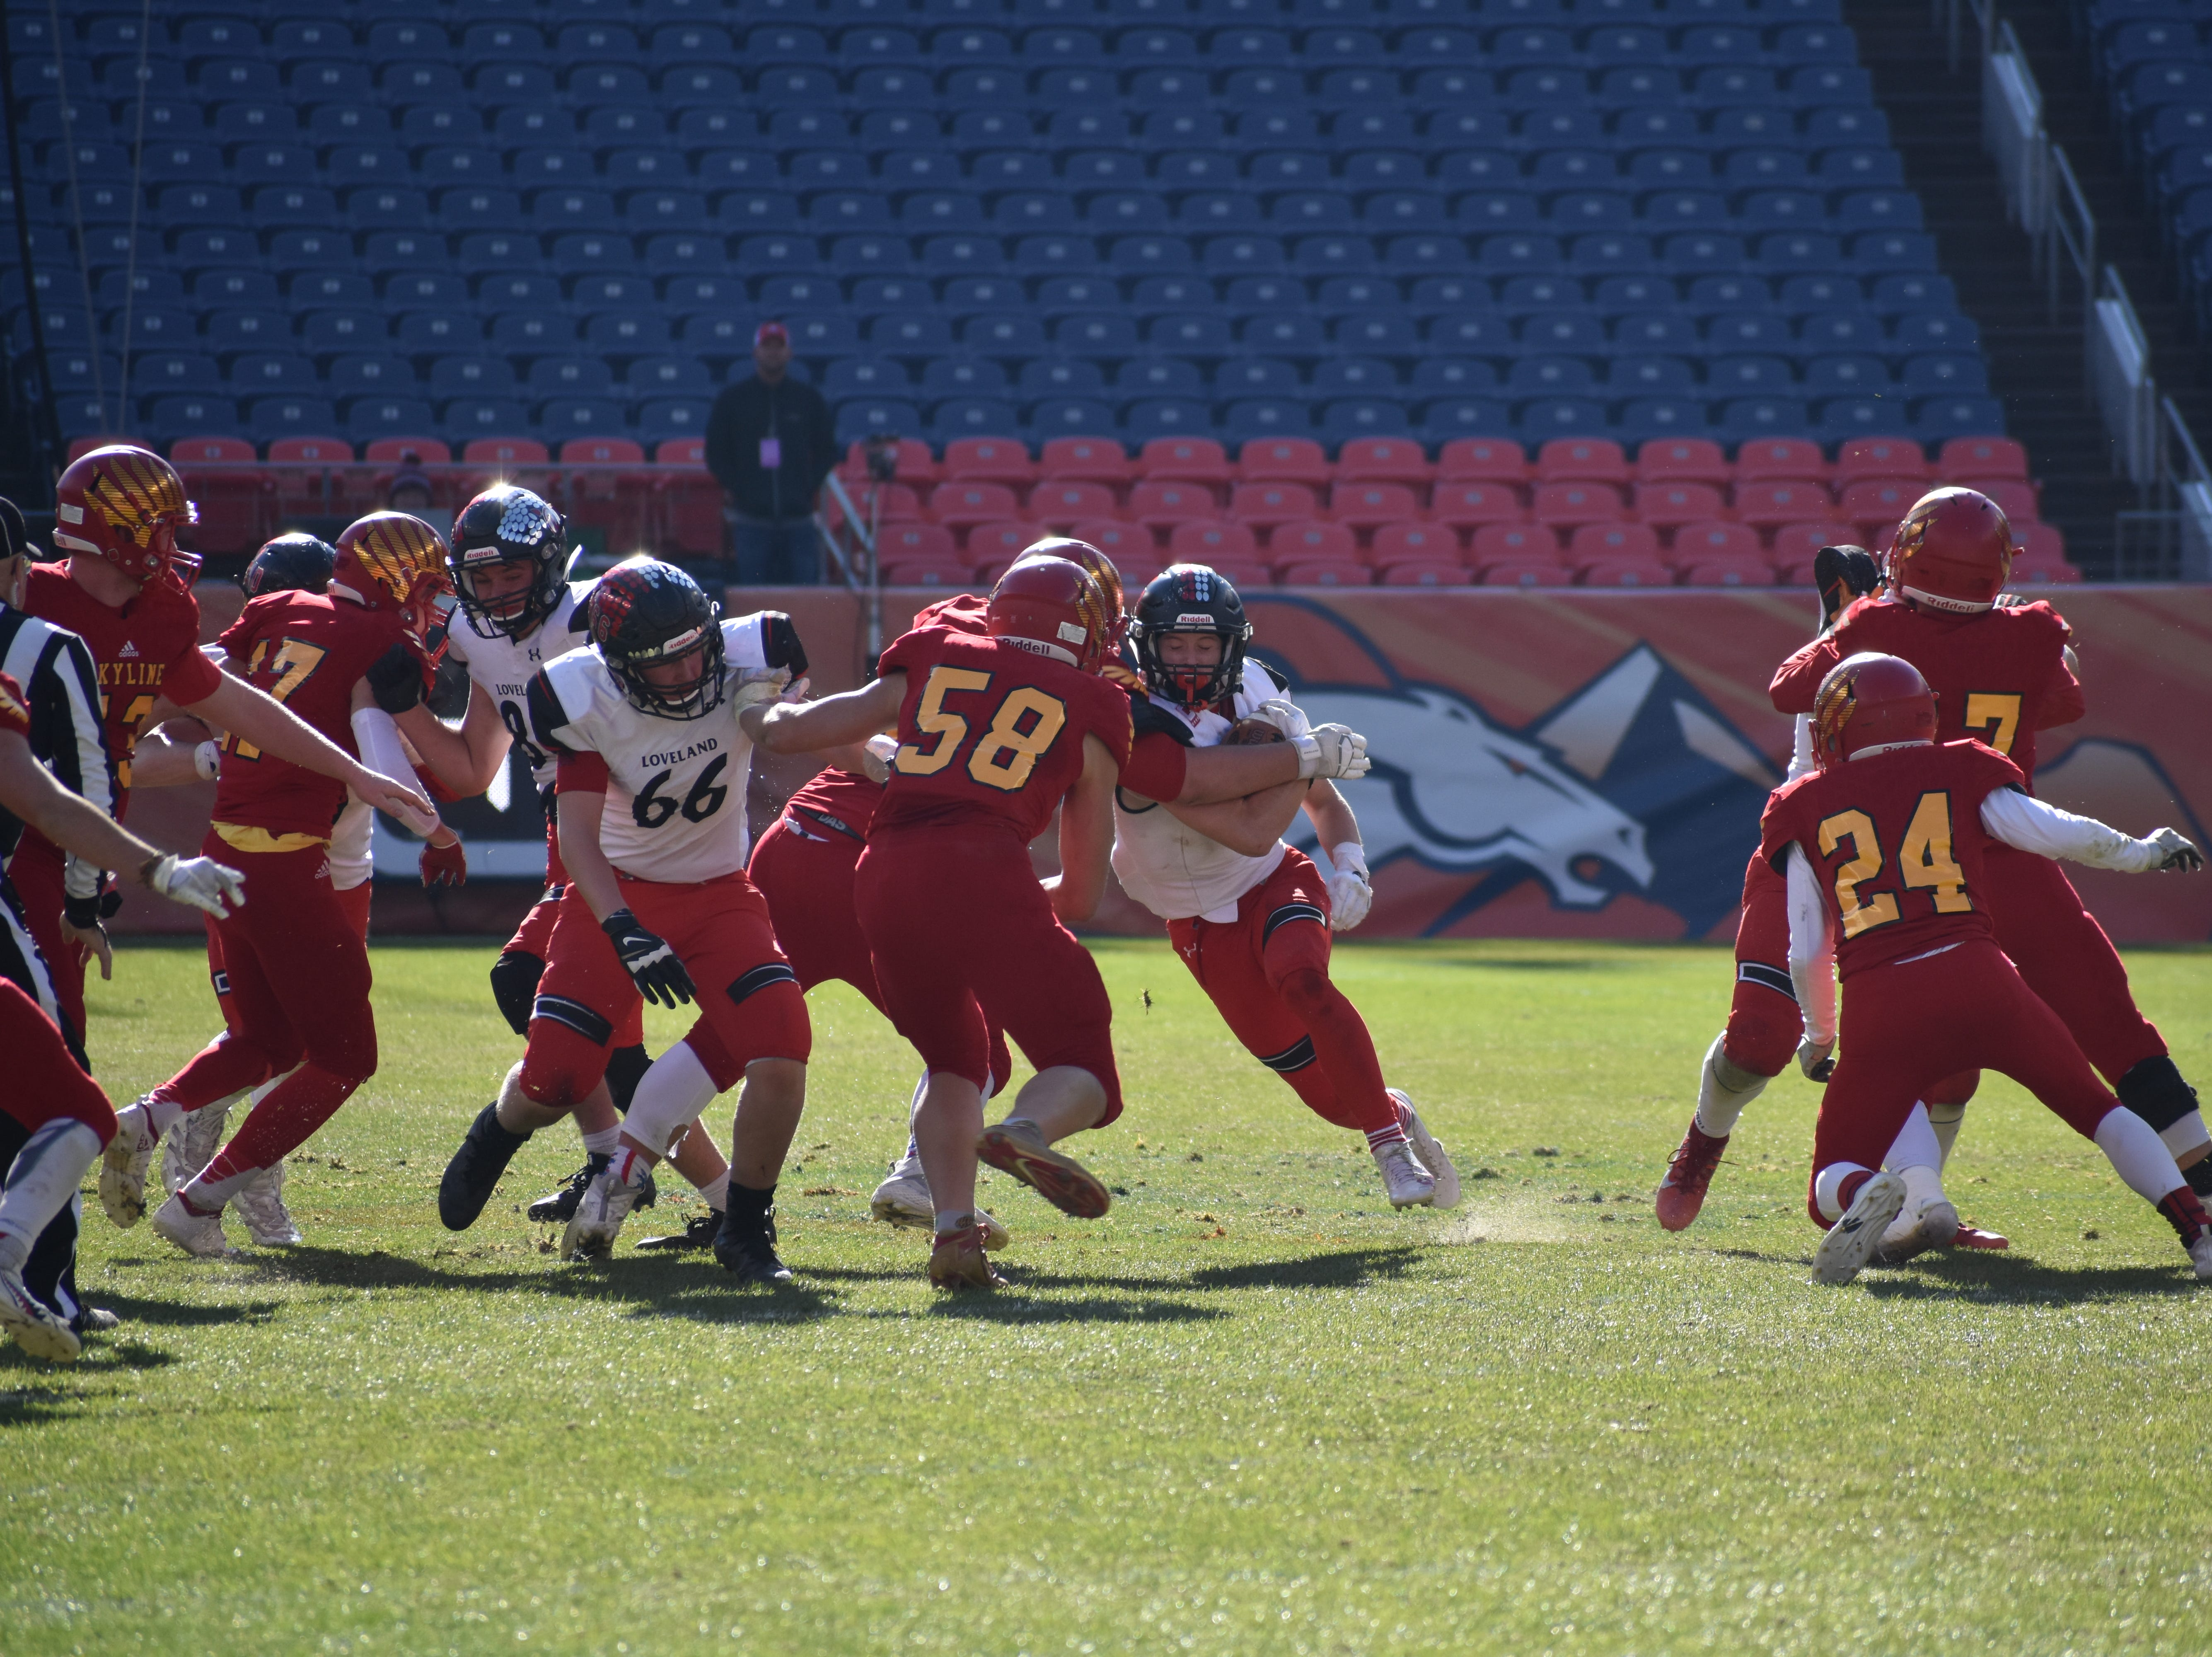 Loveland High football wins Class 4A state title Saturday at Broncos Stadium at Mile High in Denver.